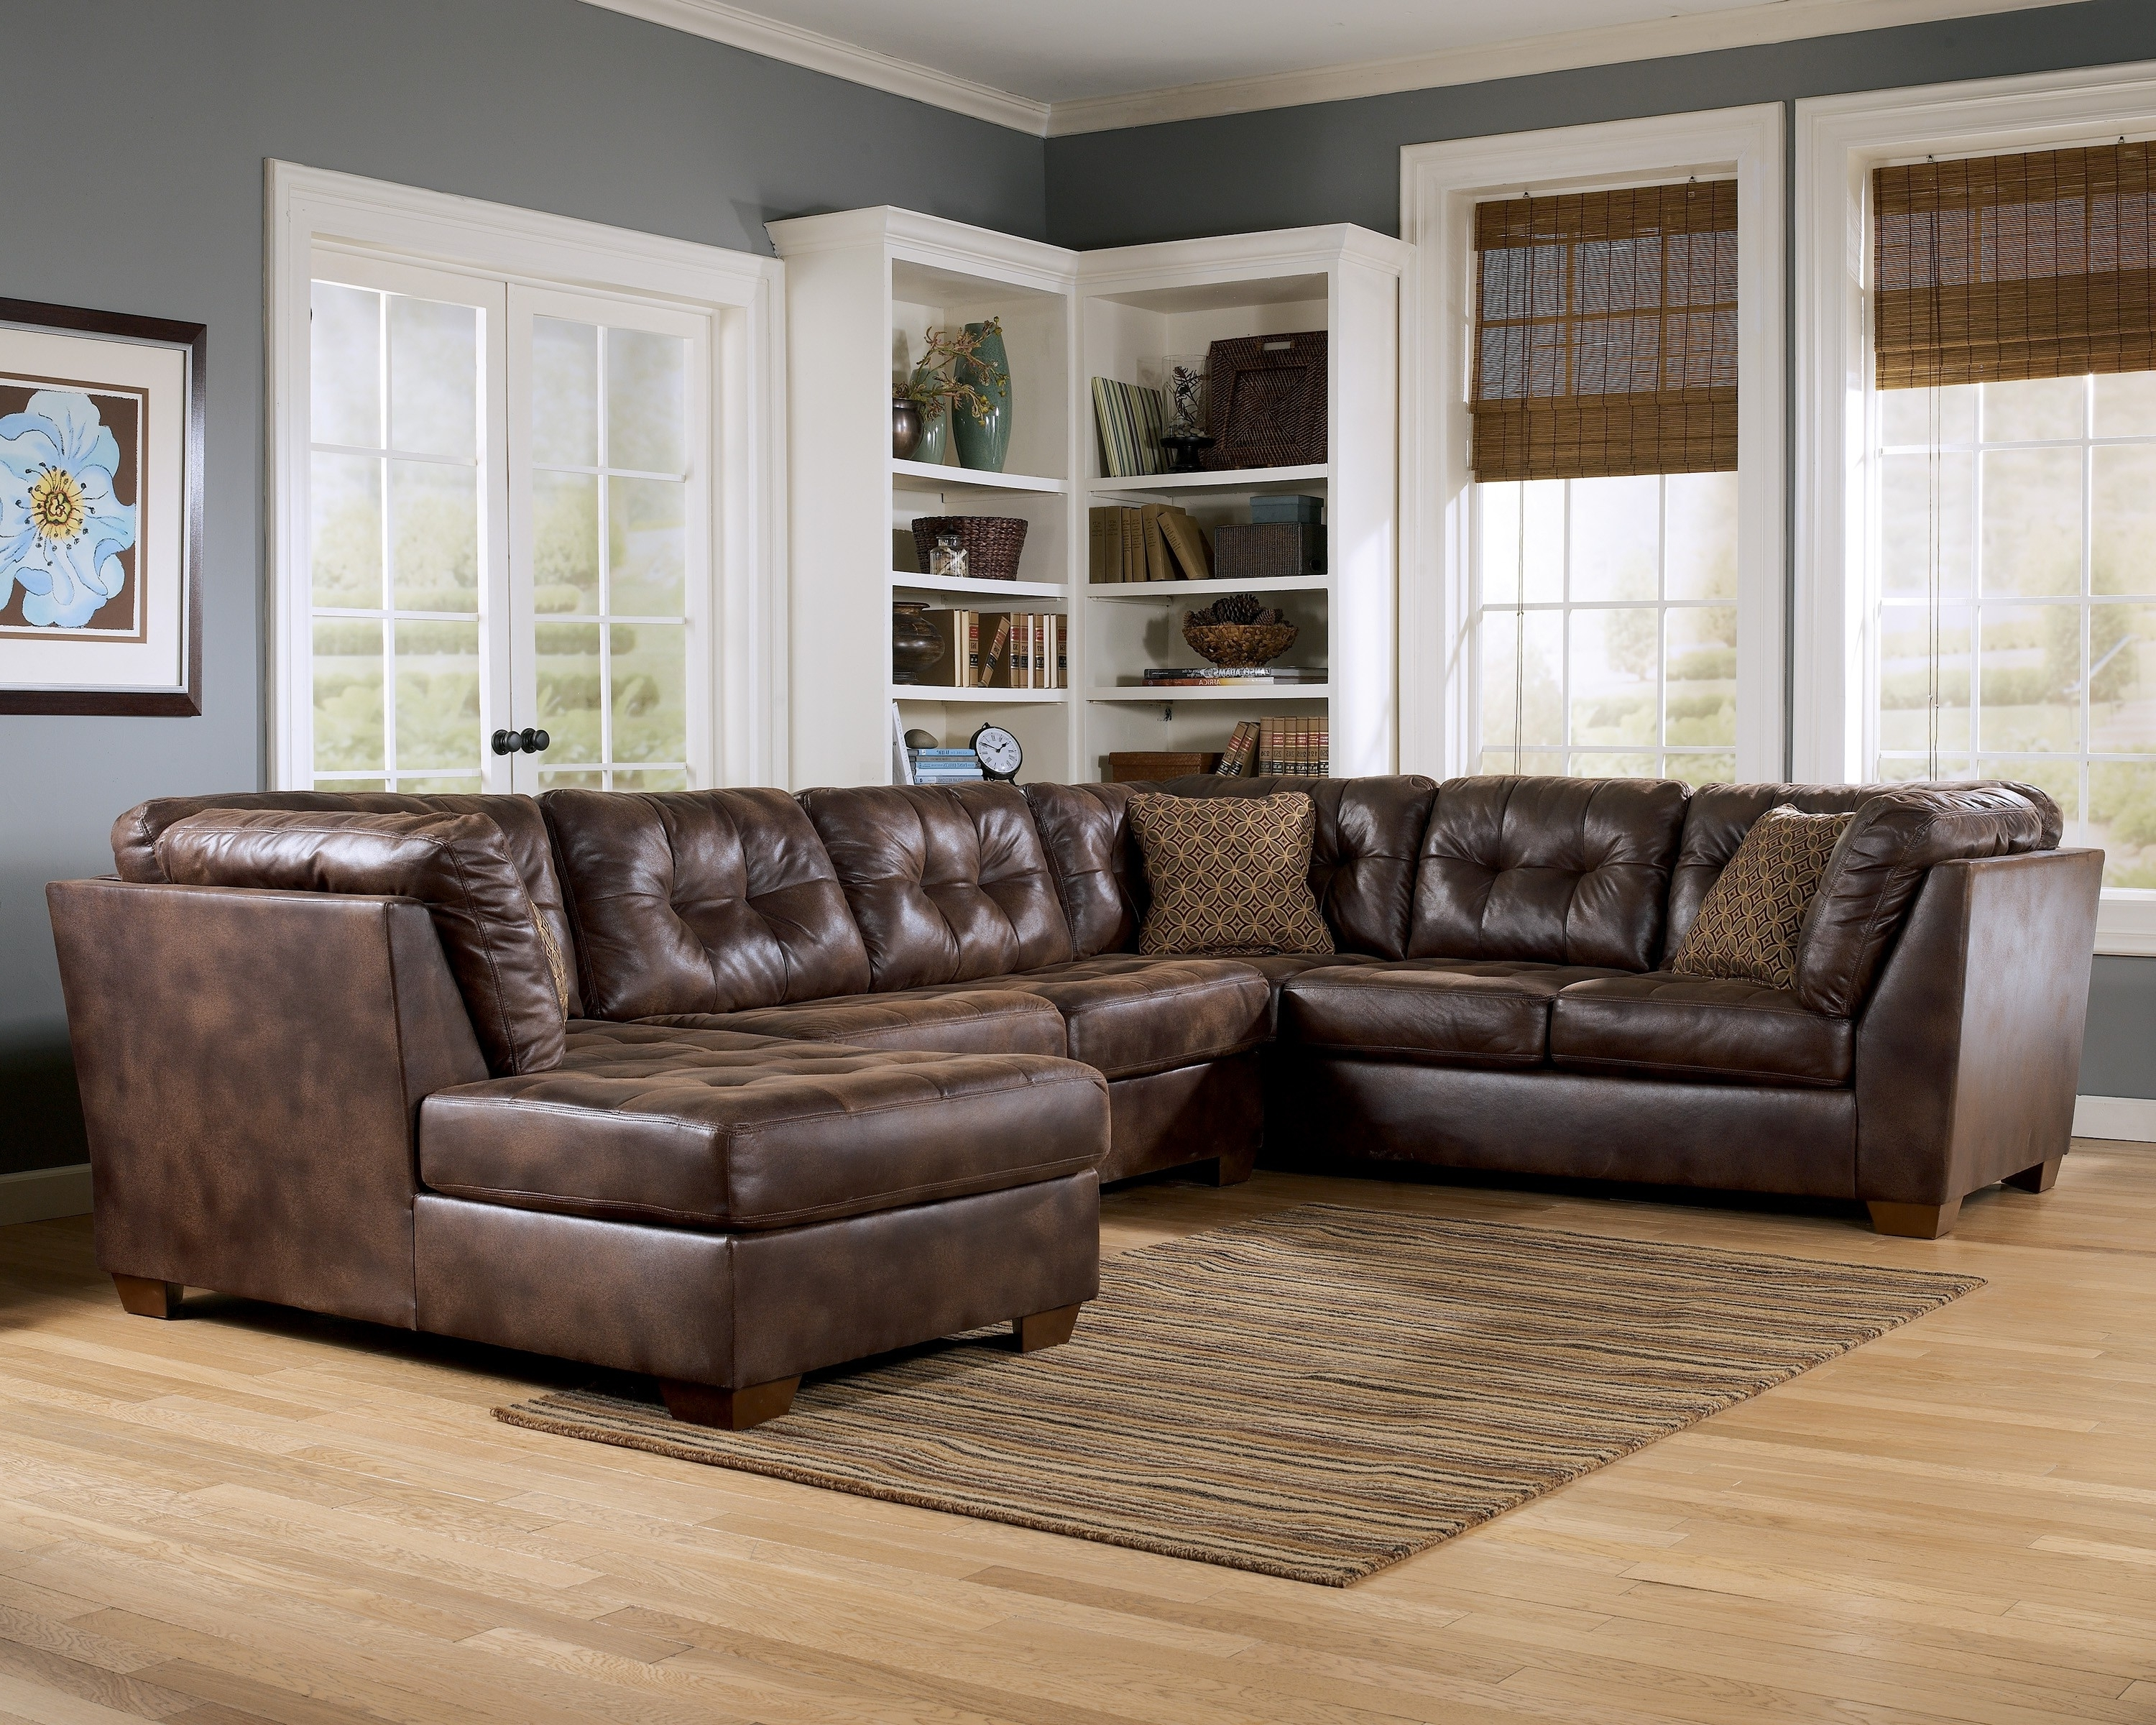 Favorite Beautiful Cozy Sectional Sofas 54 About Remodel Sectional Sofas With Cozy Sectional Sofas (View 11 of 15)